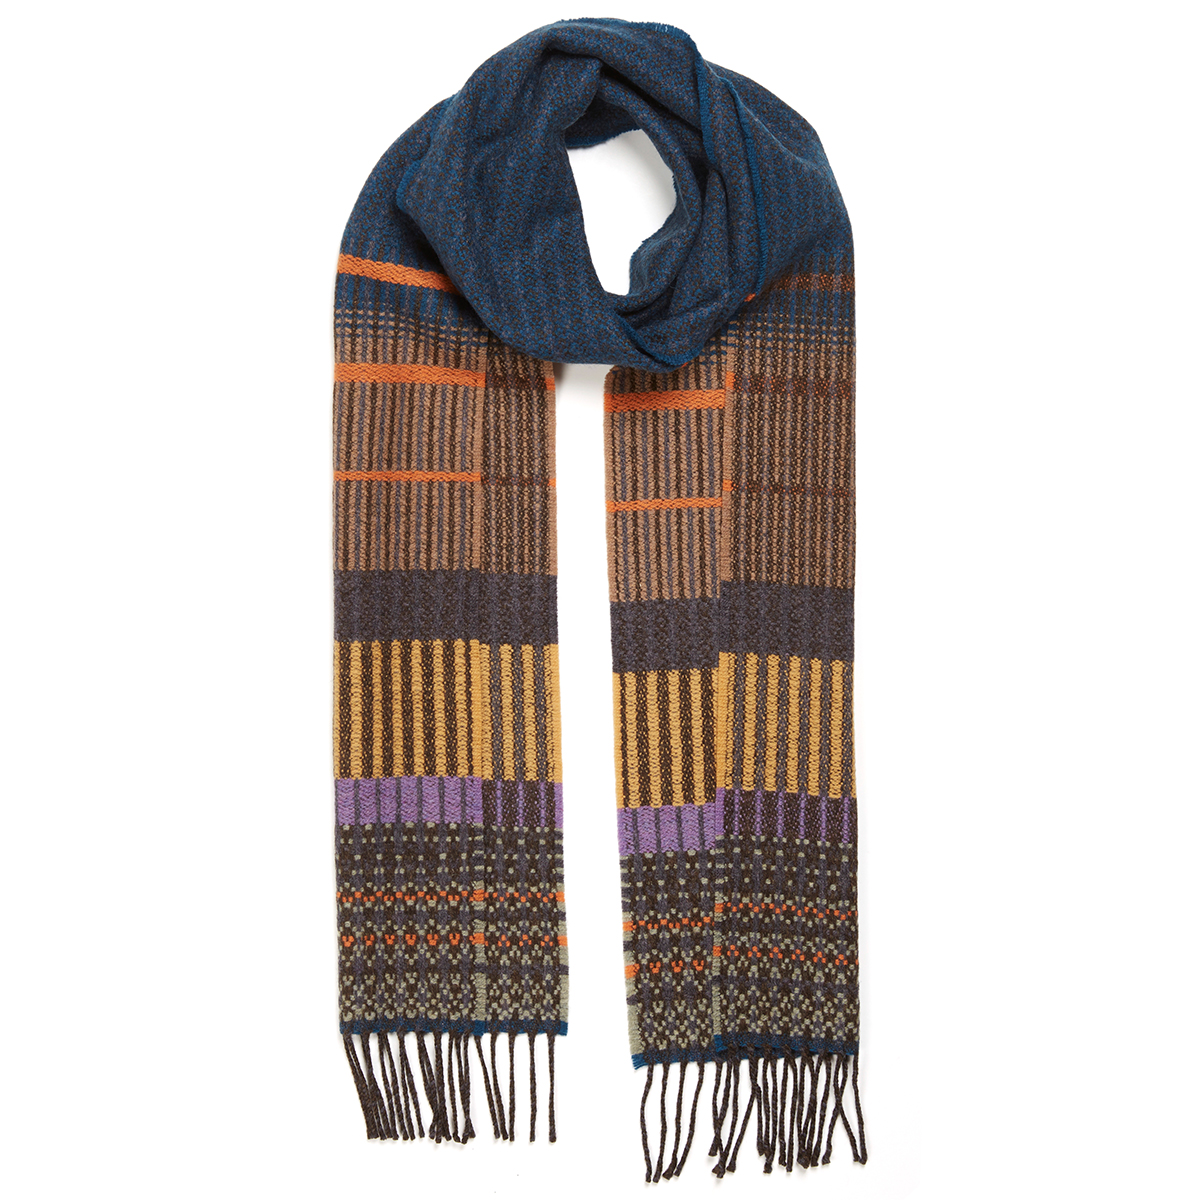 Anouilh teal scarf by Wallace Sewell